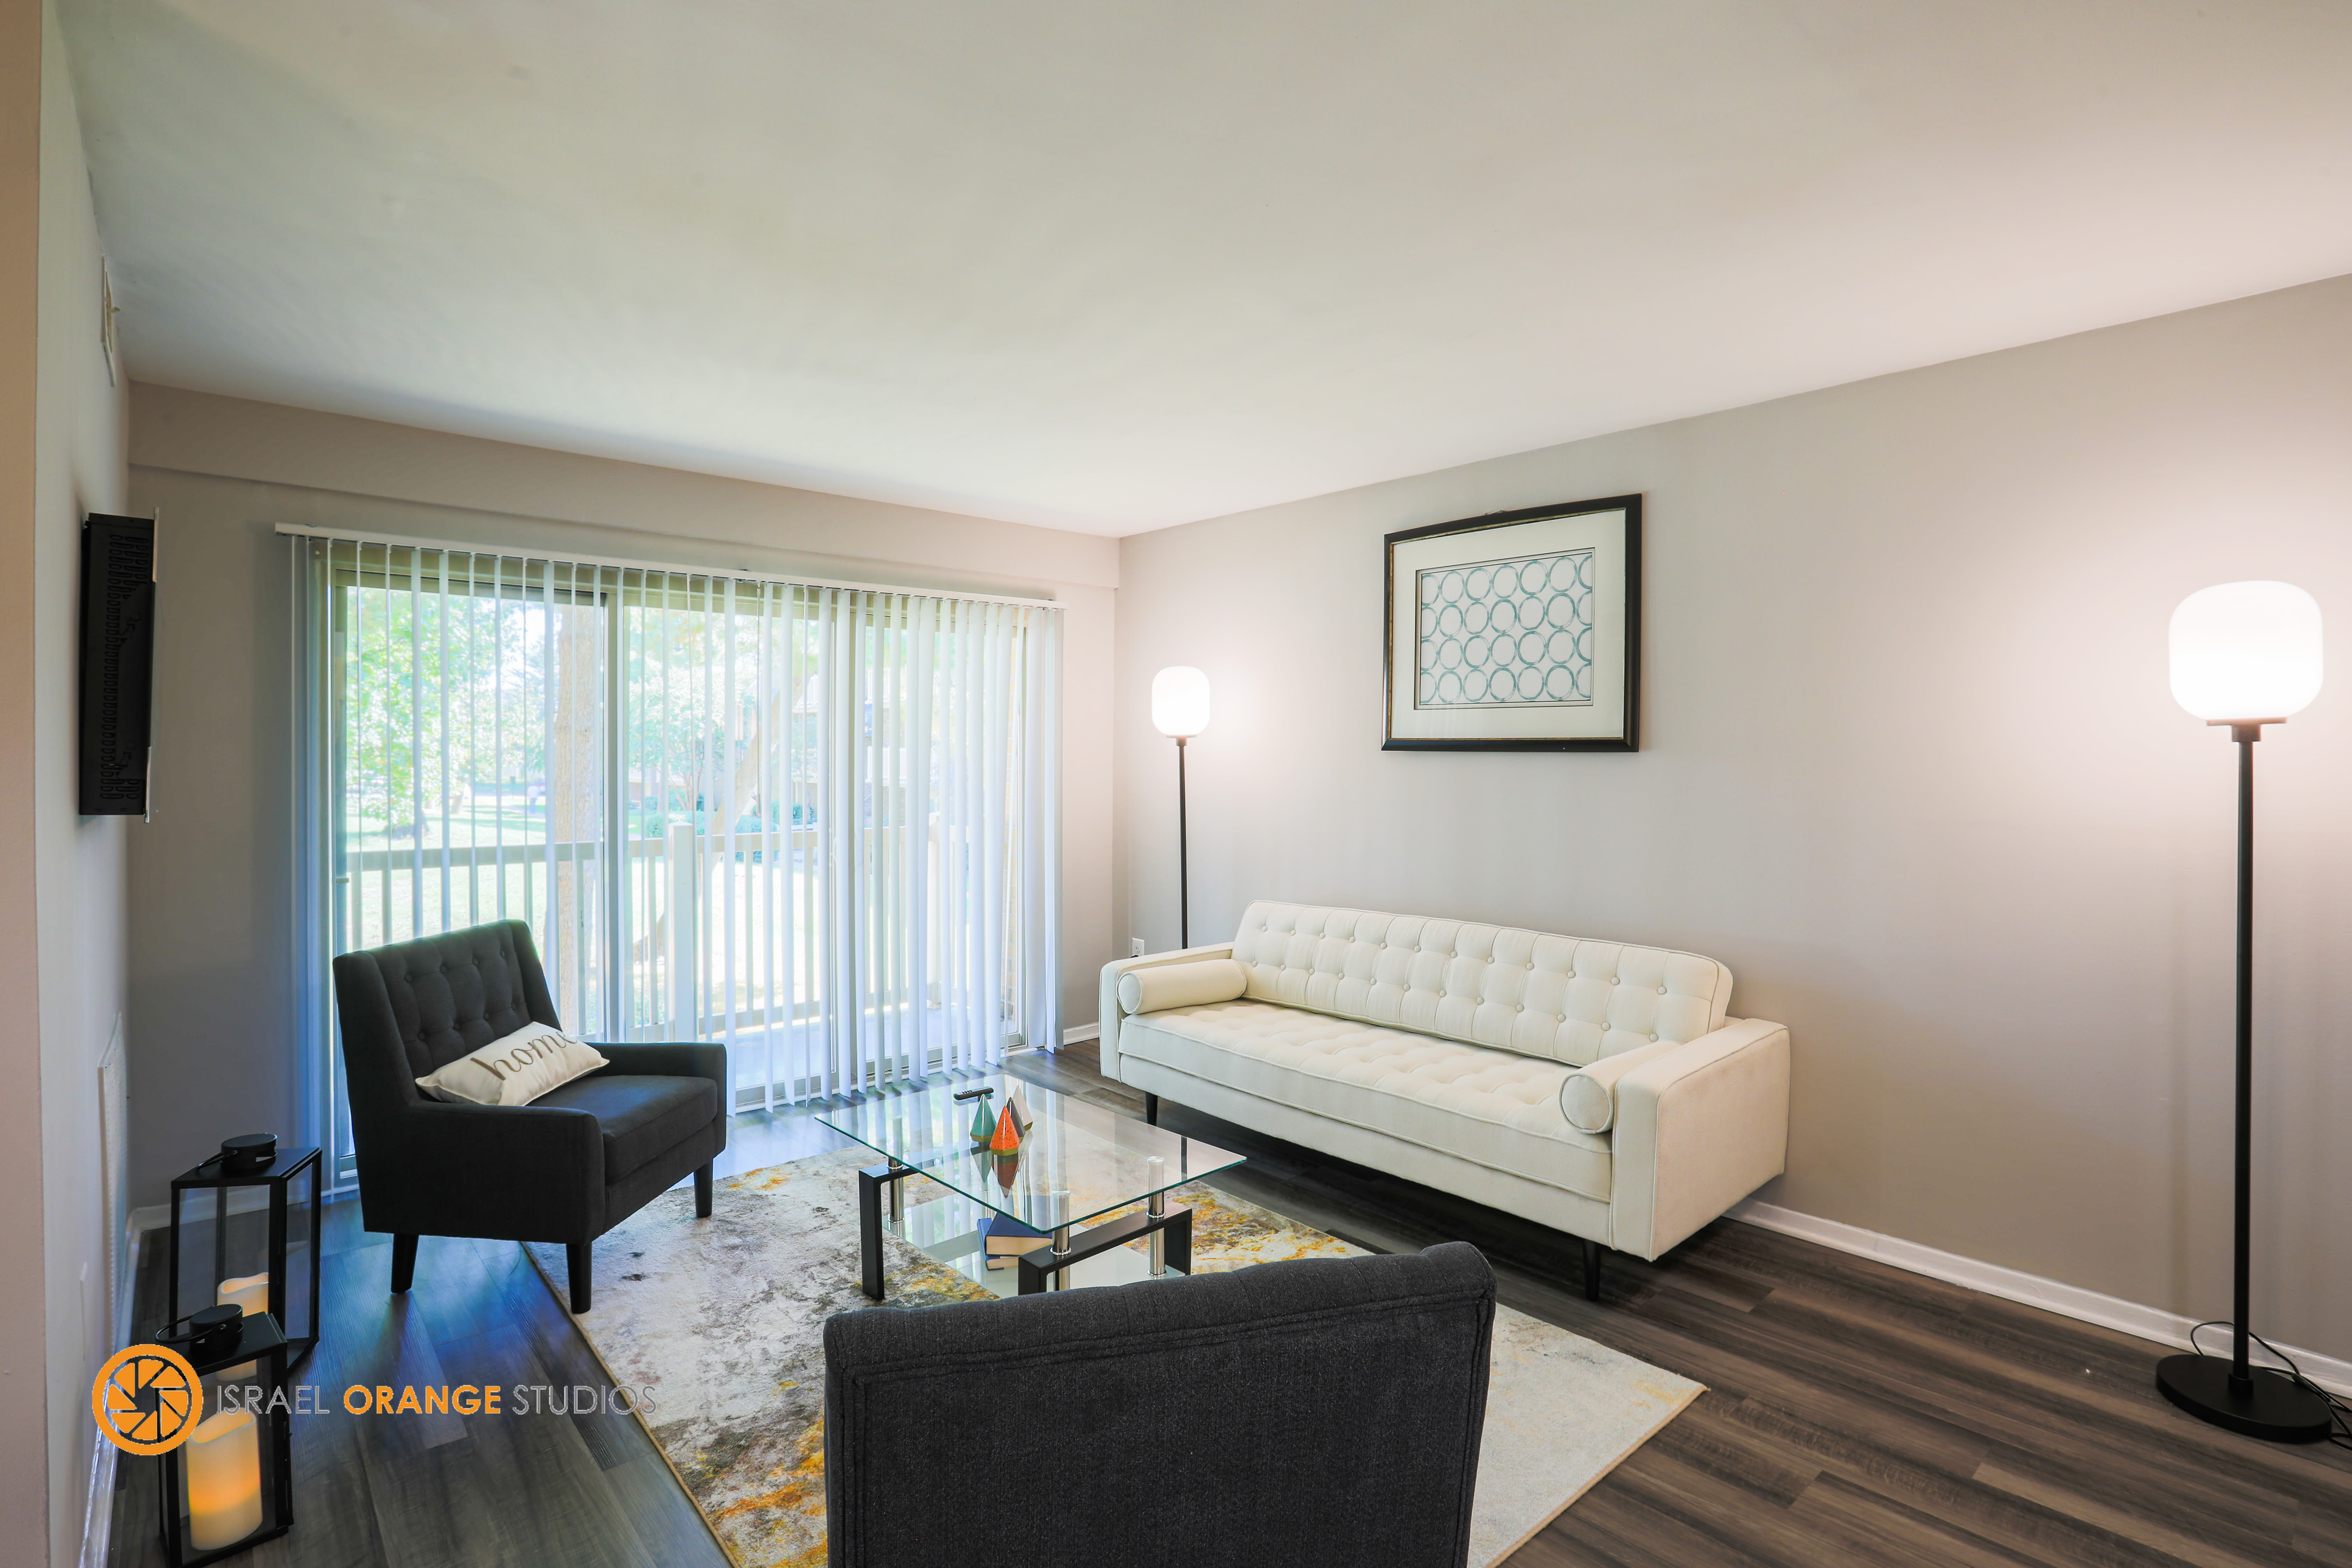 Cozy living room with couches next to window at The Glendale Residence in Lanham, Maryland